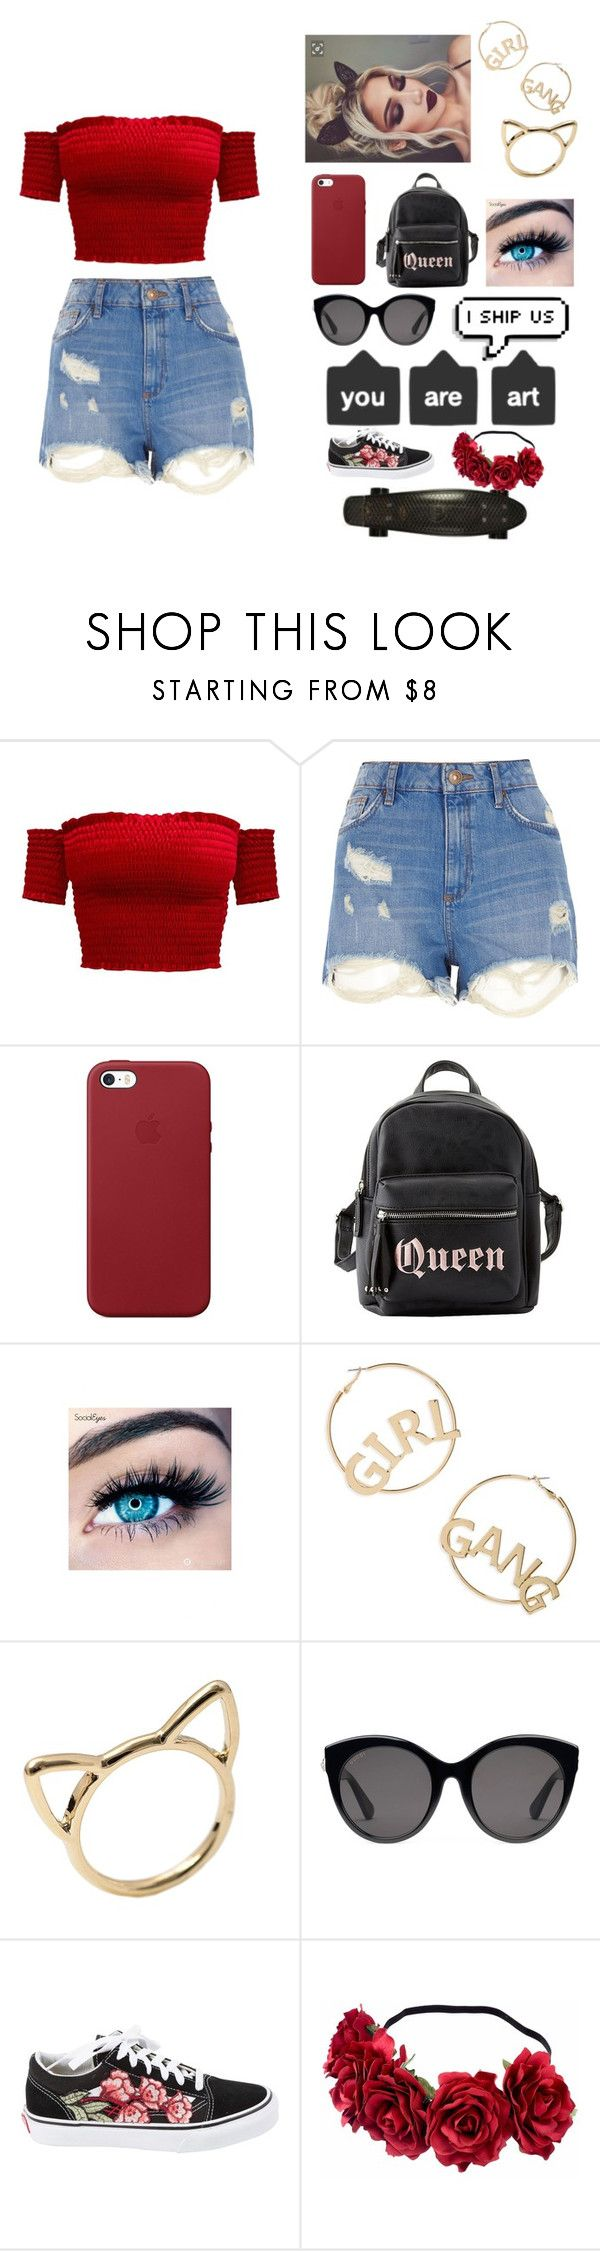 """new layoutttt yay!"" by qxeen-ty ❤ liked on Polyvore featuring River Island, Apple, Charlotte Russe, MINX, BP., Gucci, Retrò and Vans"